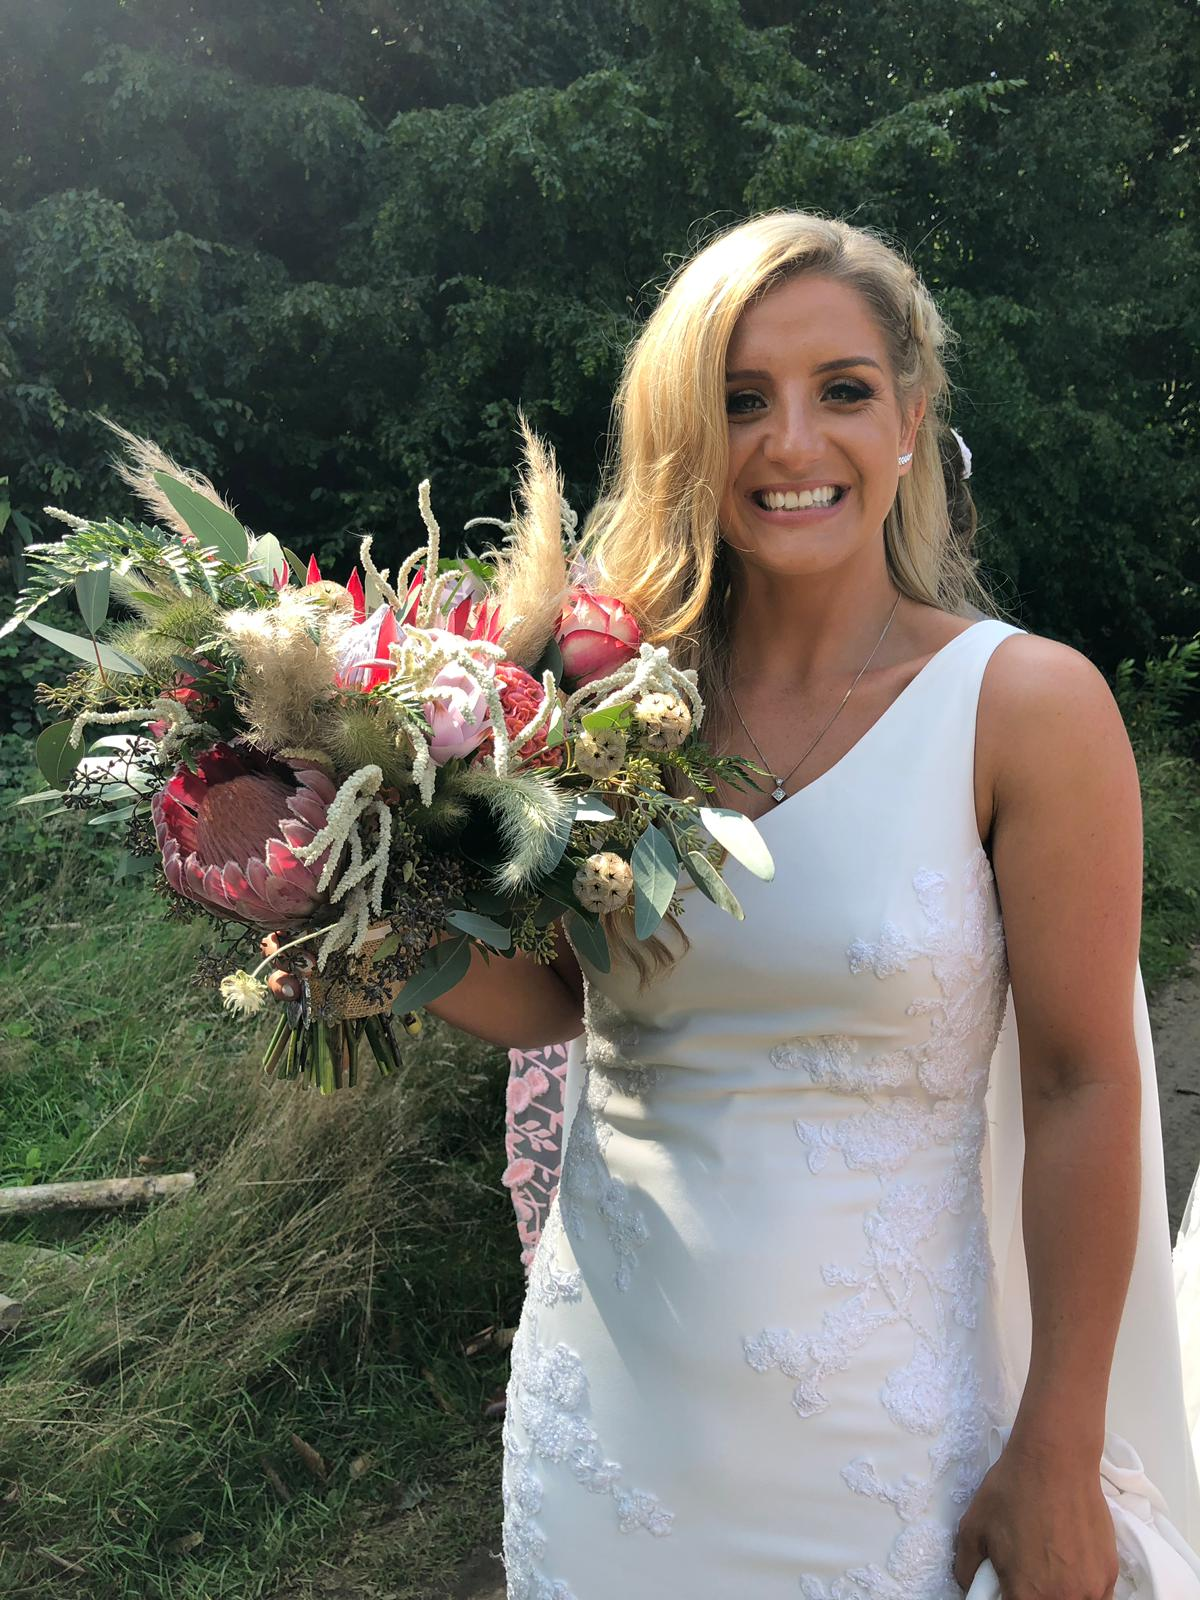 Sophie with her Bouquet